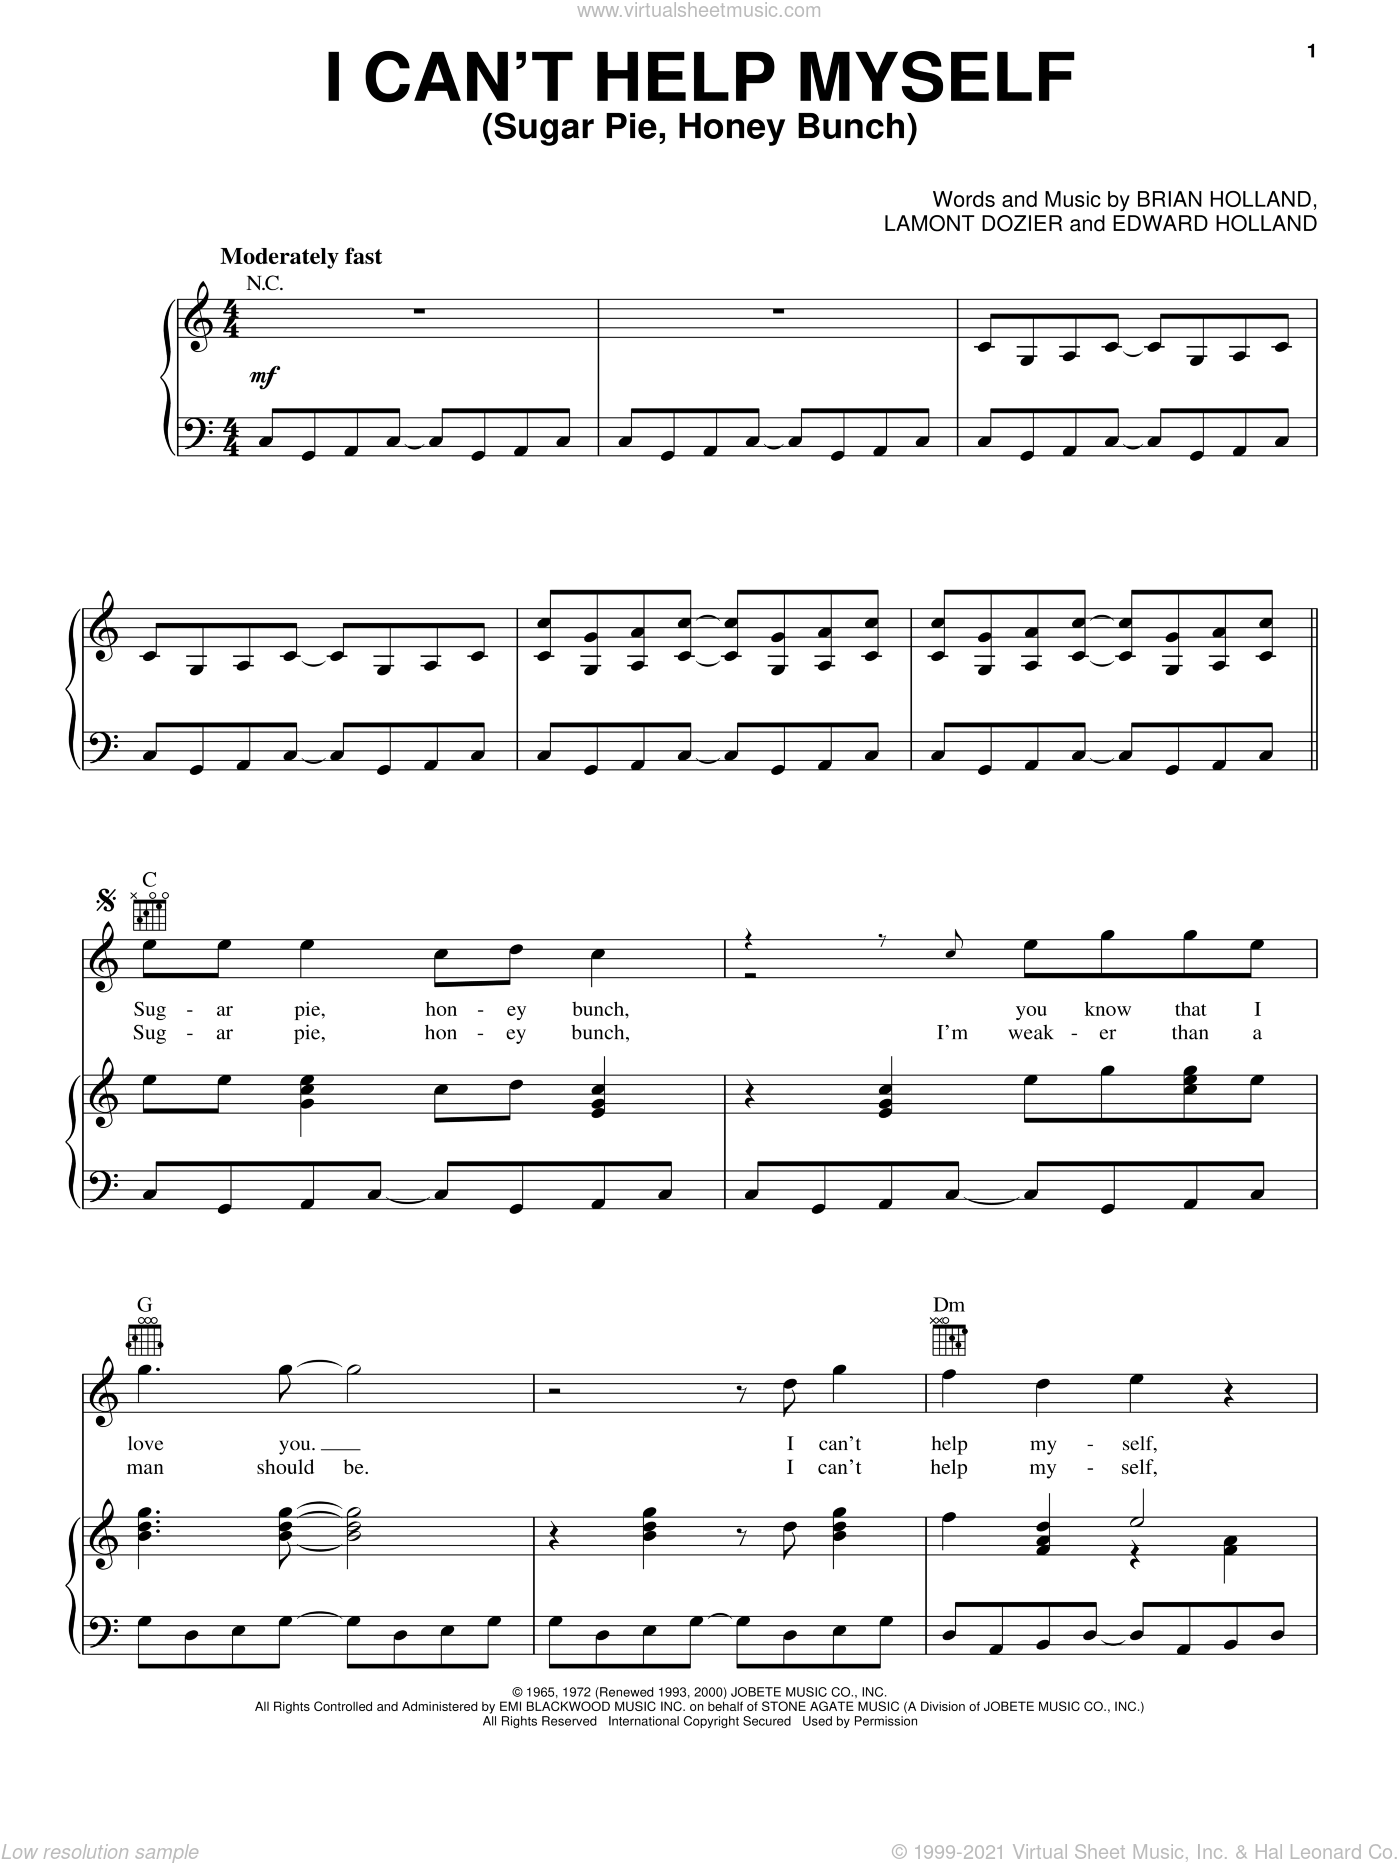 I Can't Help Myself (Sugar Pie, Honey Bunch) sheet music for voice, piano or guitar by The Four Tops, Brian Holland, Eddie Holland and Lamont Dozier, intermediate voice, piano or guitar. Score Image Preview.